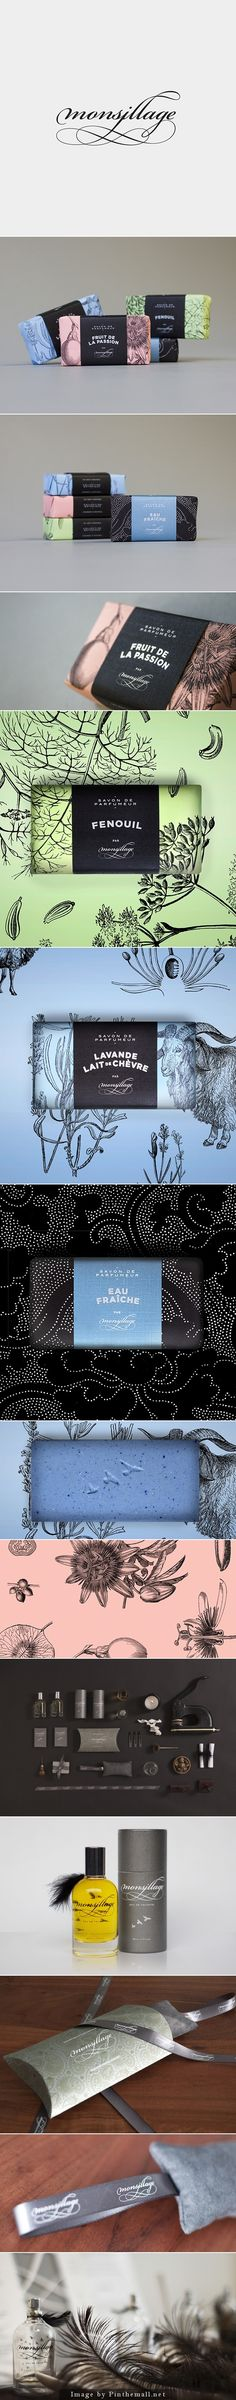 Monsillage by Phillipe Archontakis gorgeous soap and sundry packaging curated by Packaging Diva PD